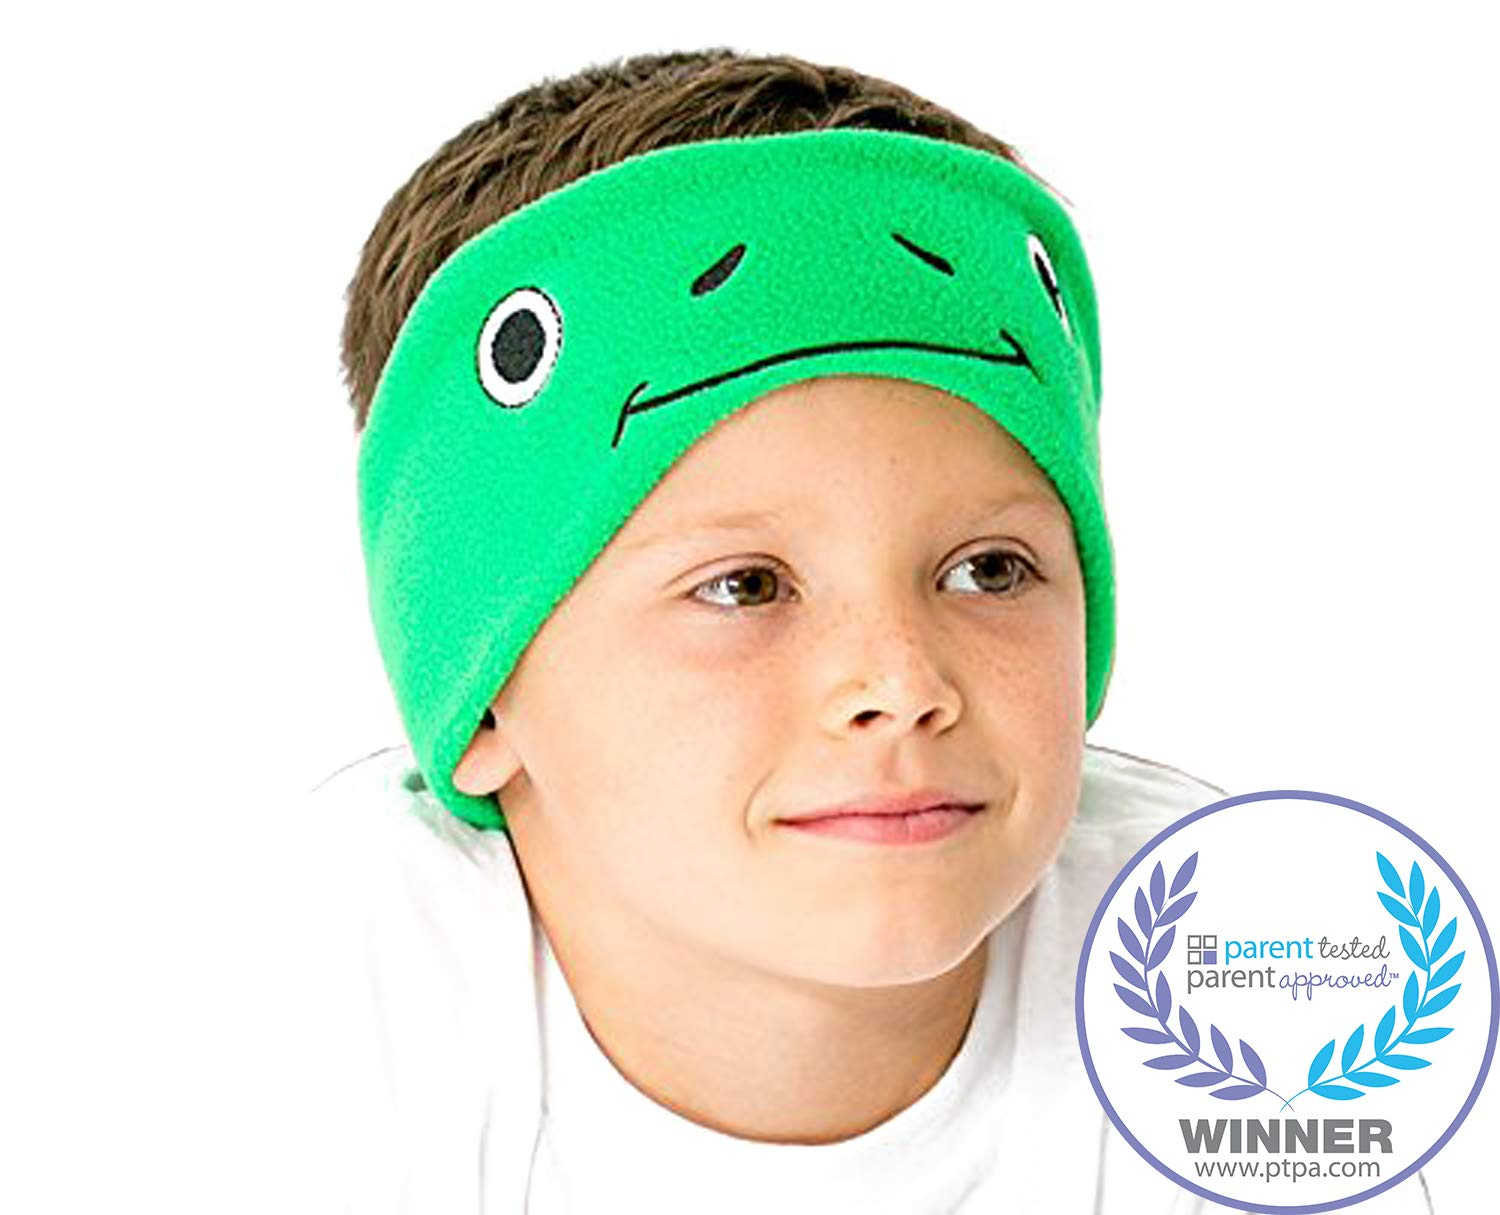 65856985533 CozyPhones Kids Headphones Volume Limited with Ultra-Thin Speakers Soft  Fleece Headband - Perfect Children's Earphones for Home and Travel - Green  Froggy